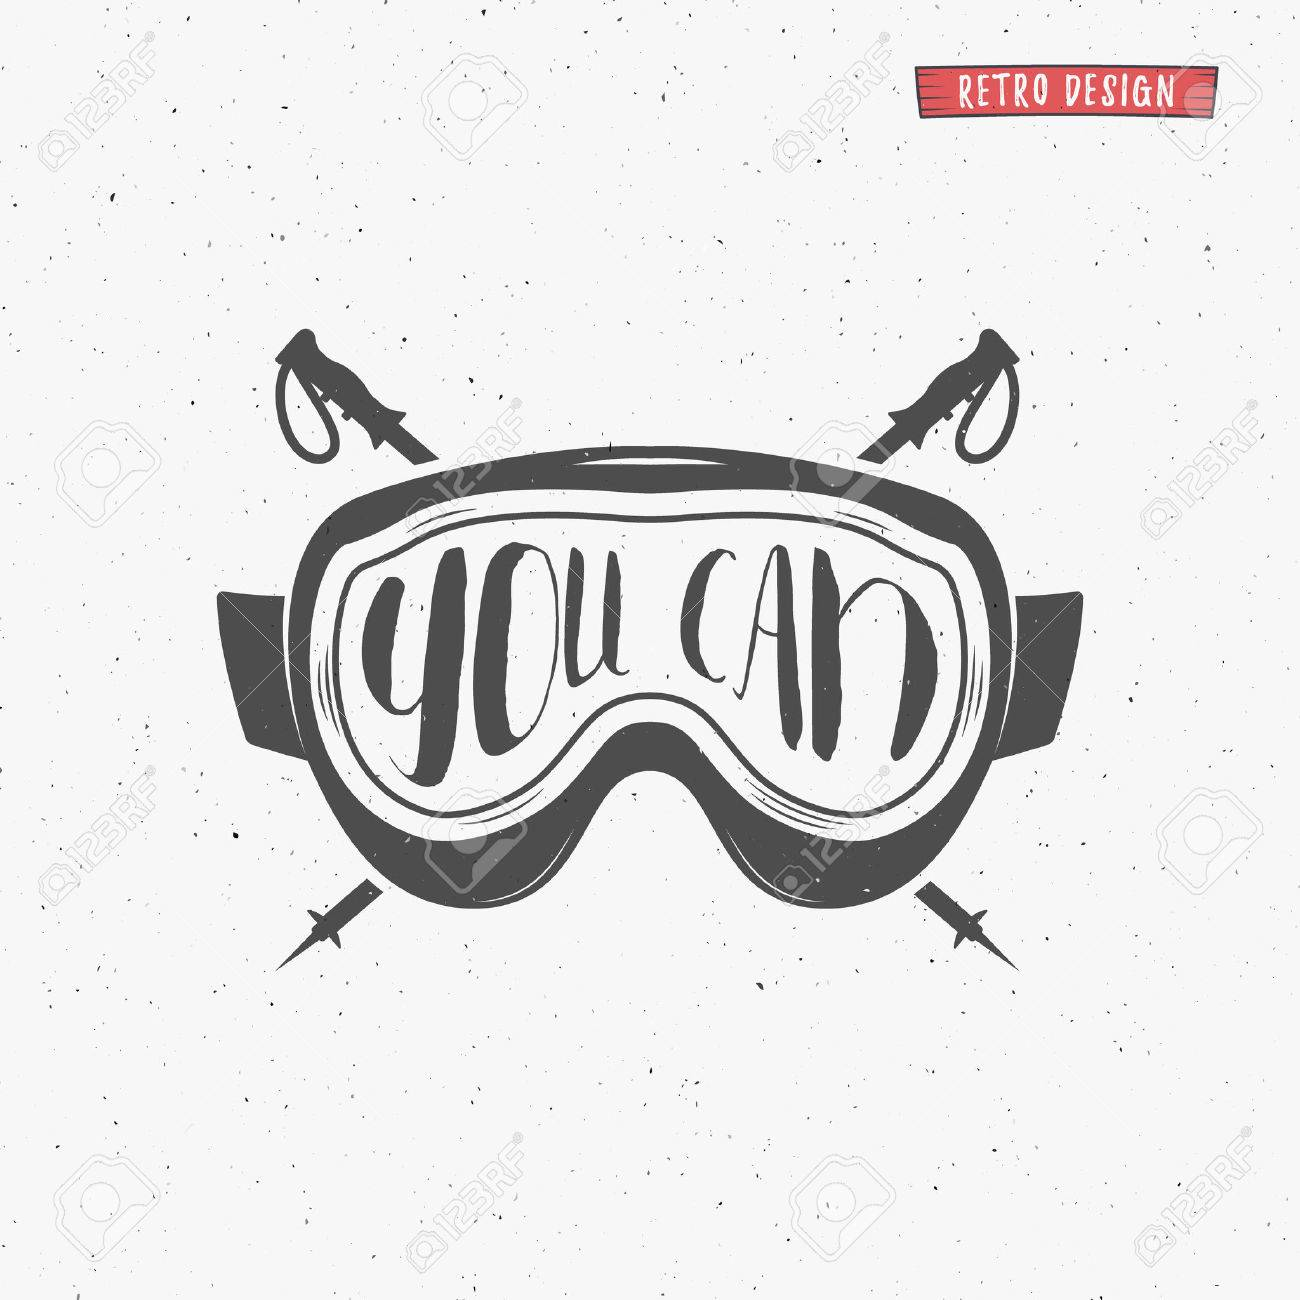 Quote poster design inspiration - Vector Winter Typography Poster Design With Inspiration Quote You Can Motivational Snowboard Sign Sports Fun Greeting Card With Goggles